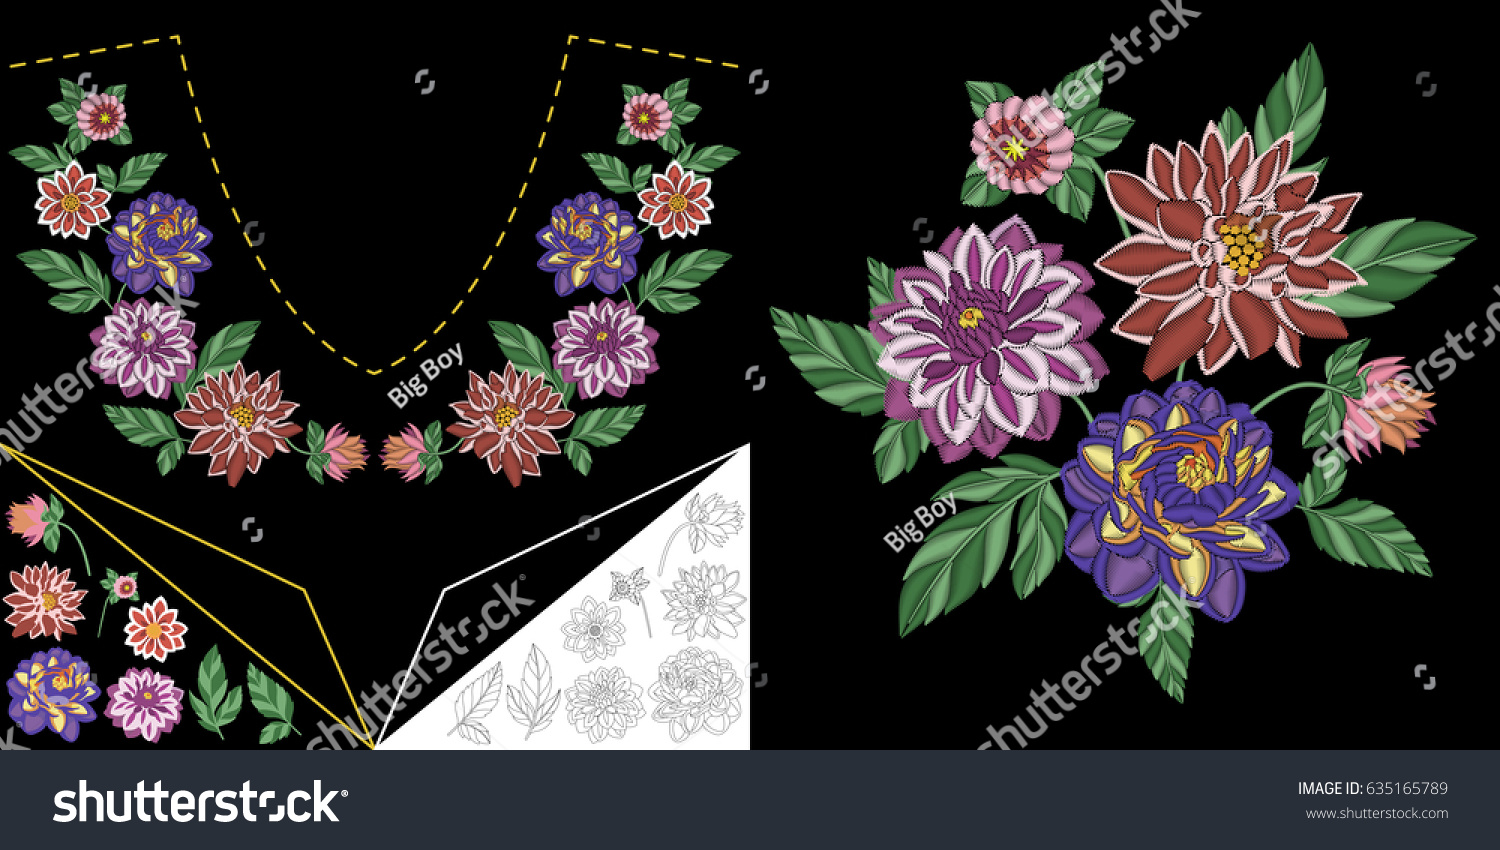 collection of floral design - photo #34